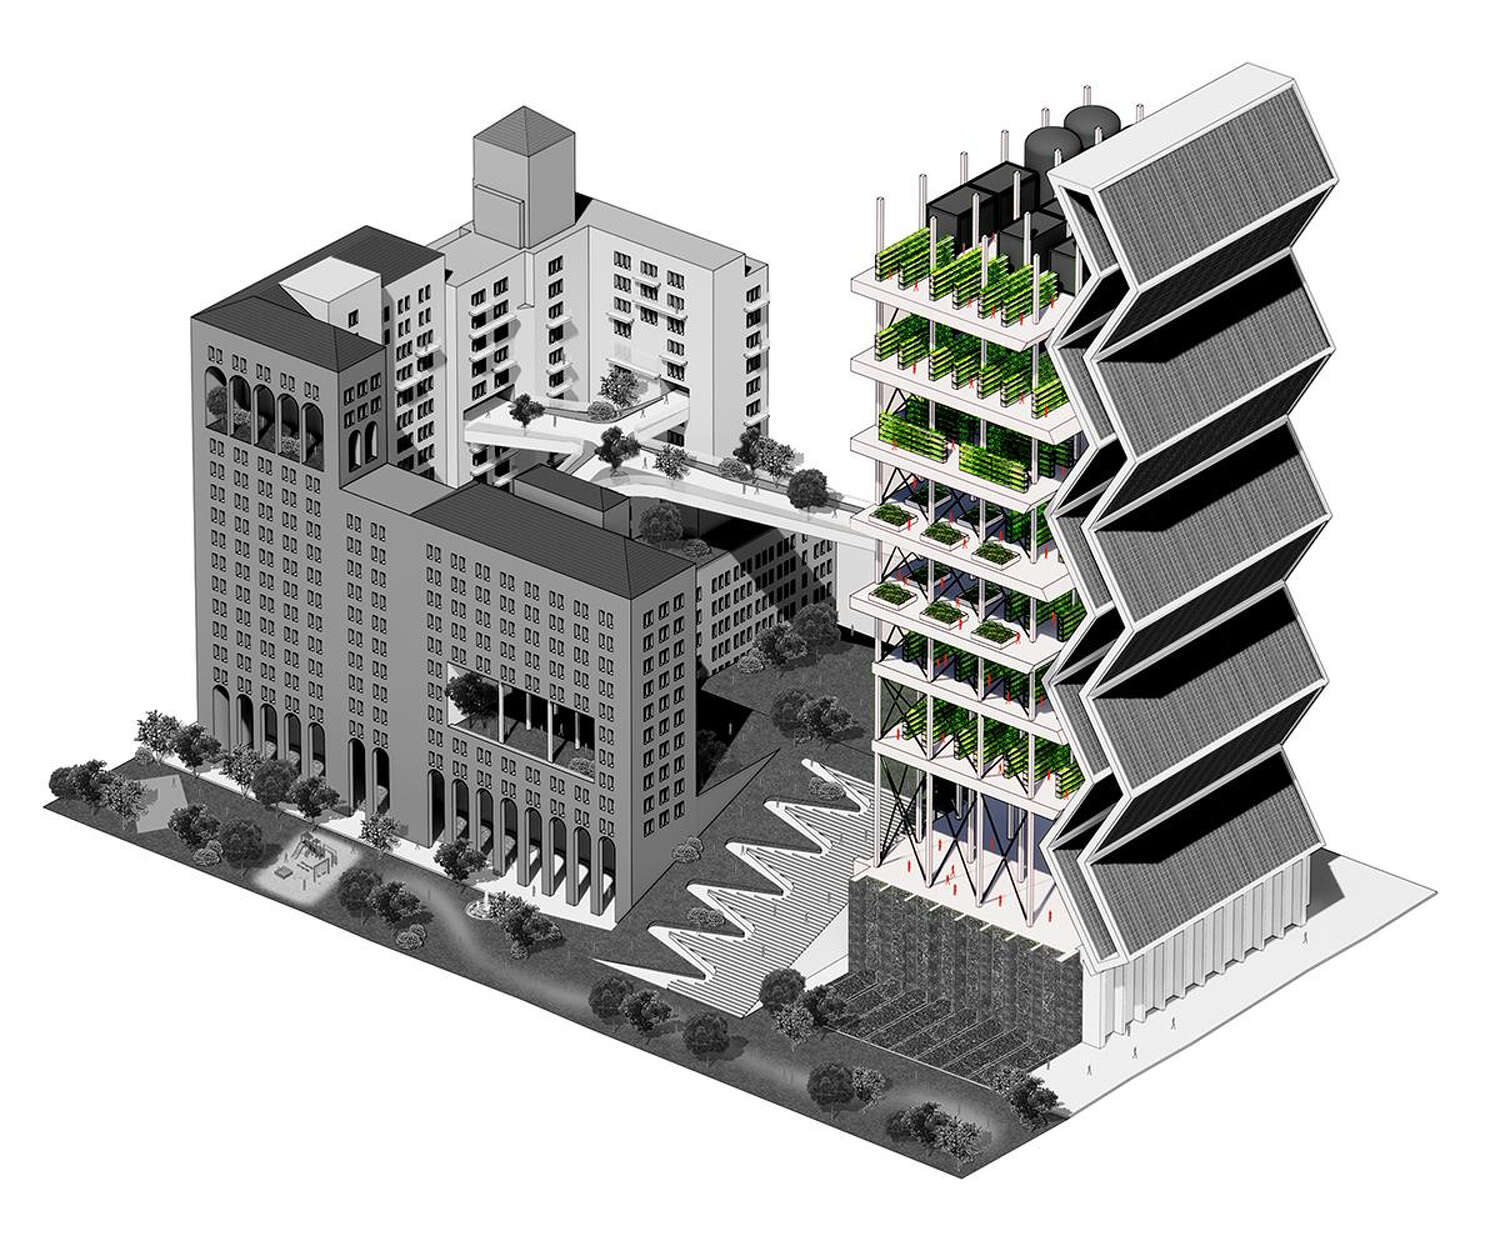 The back part of the building in the front of the rendering is highlighted.